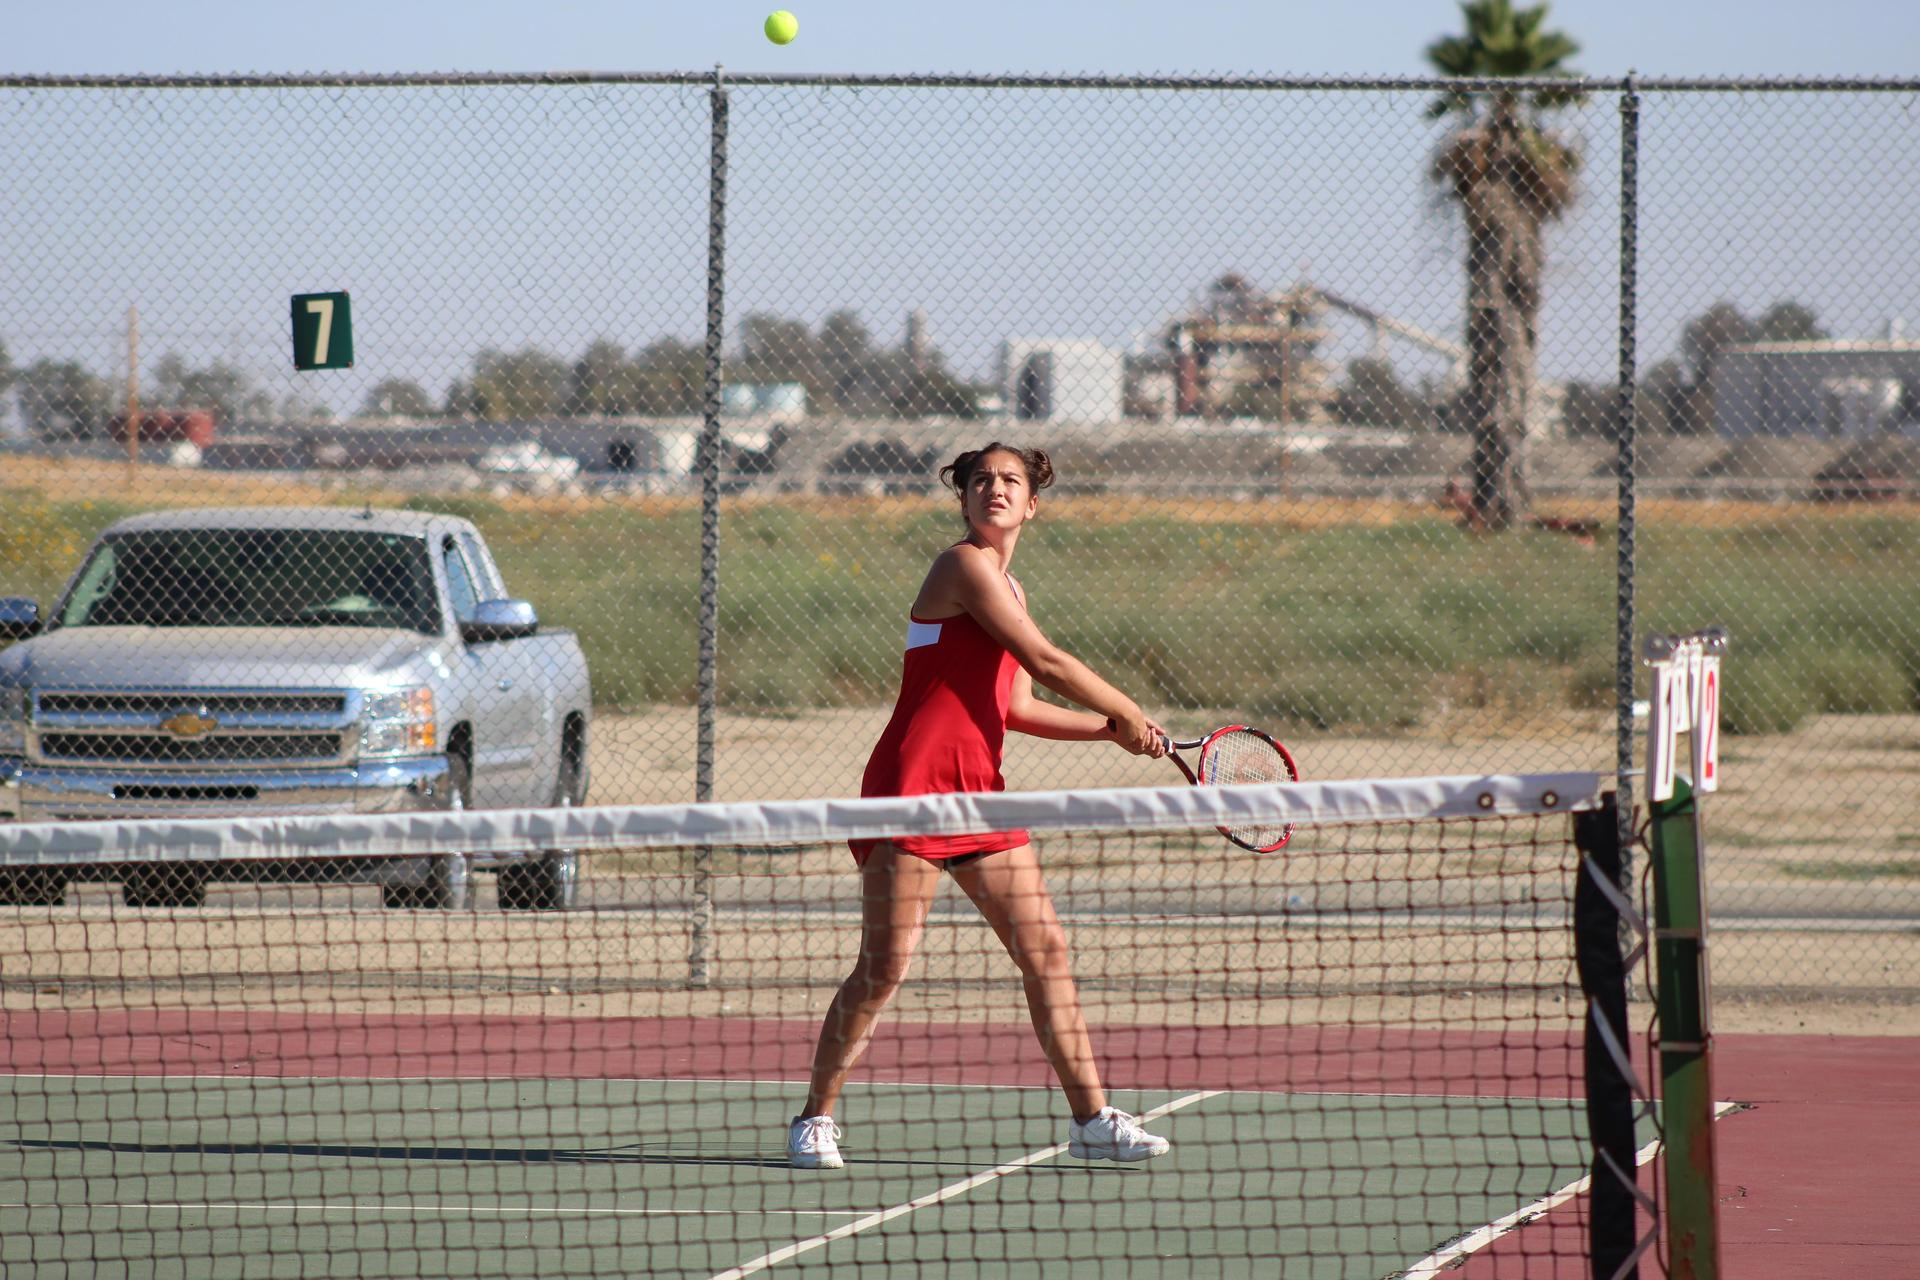 Girls playing tennis against Washington Union